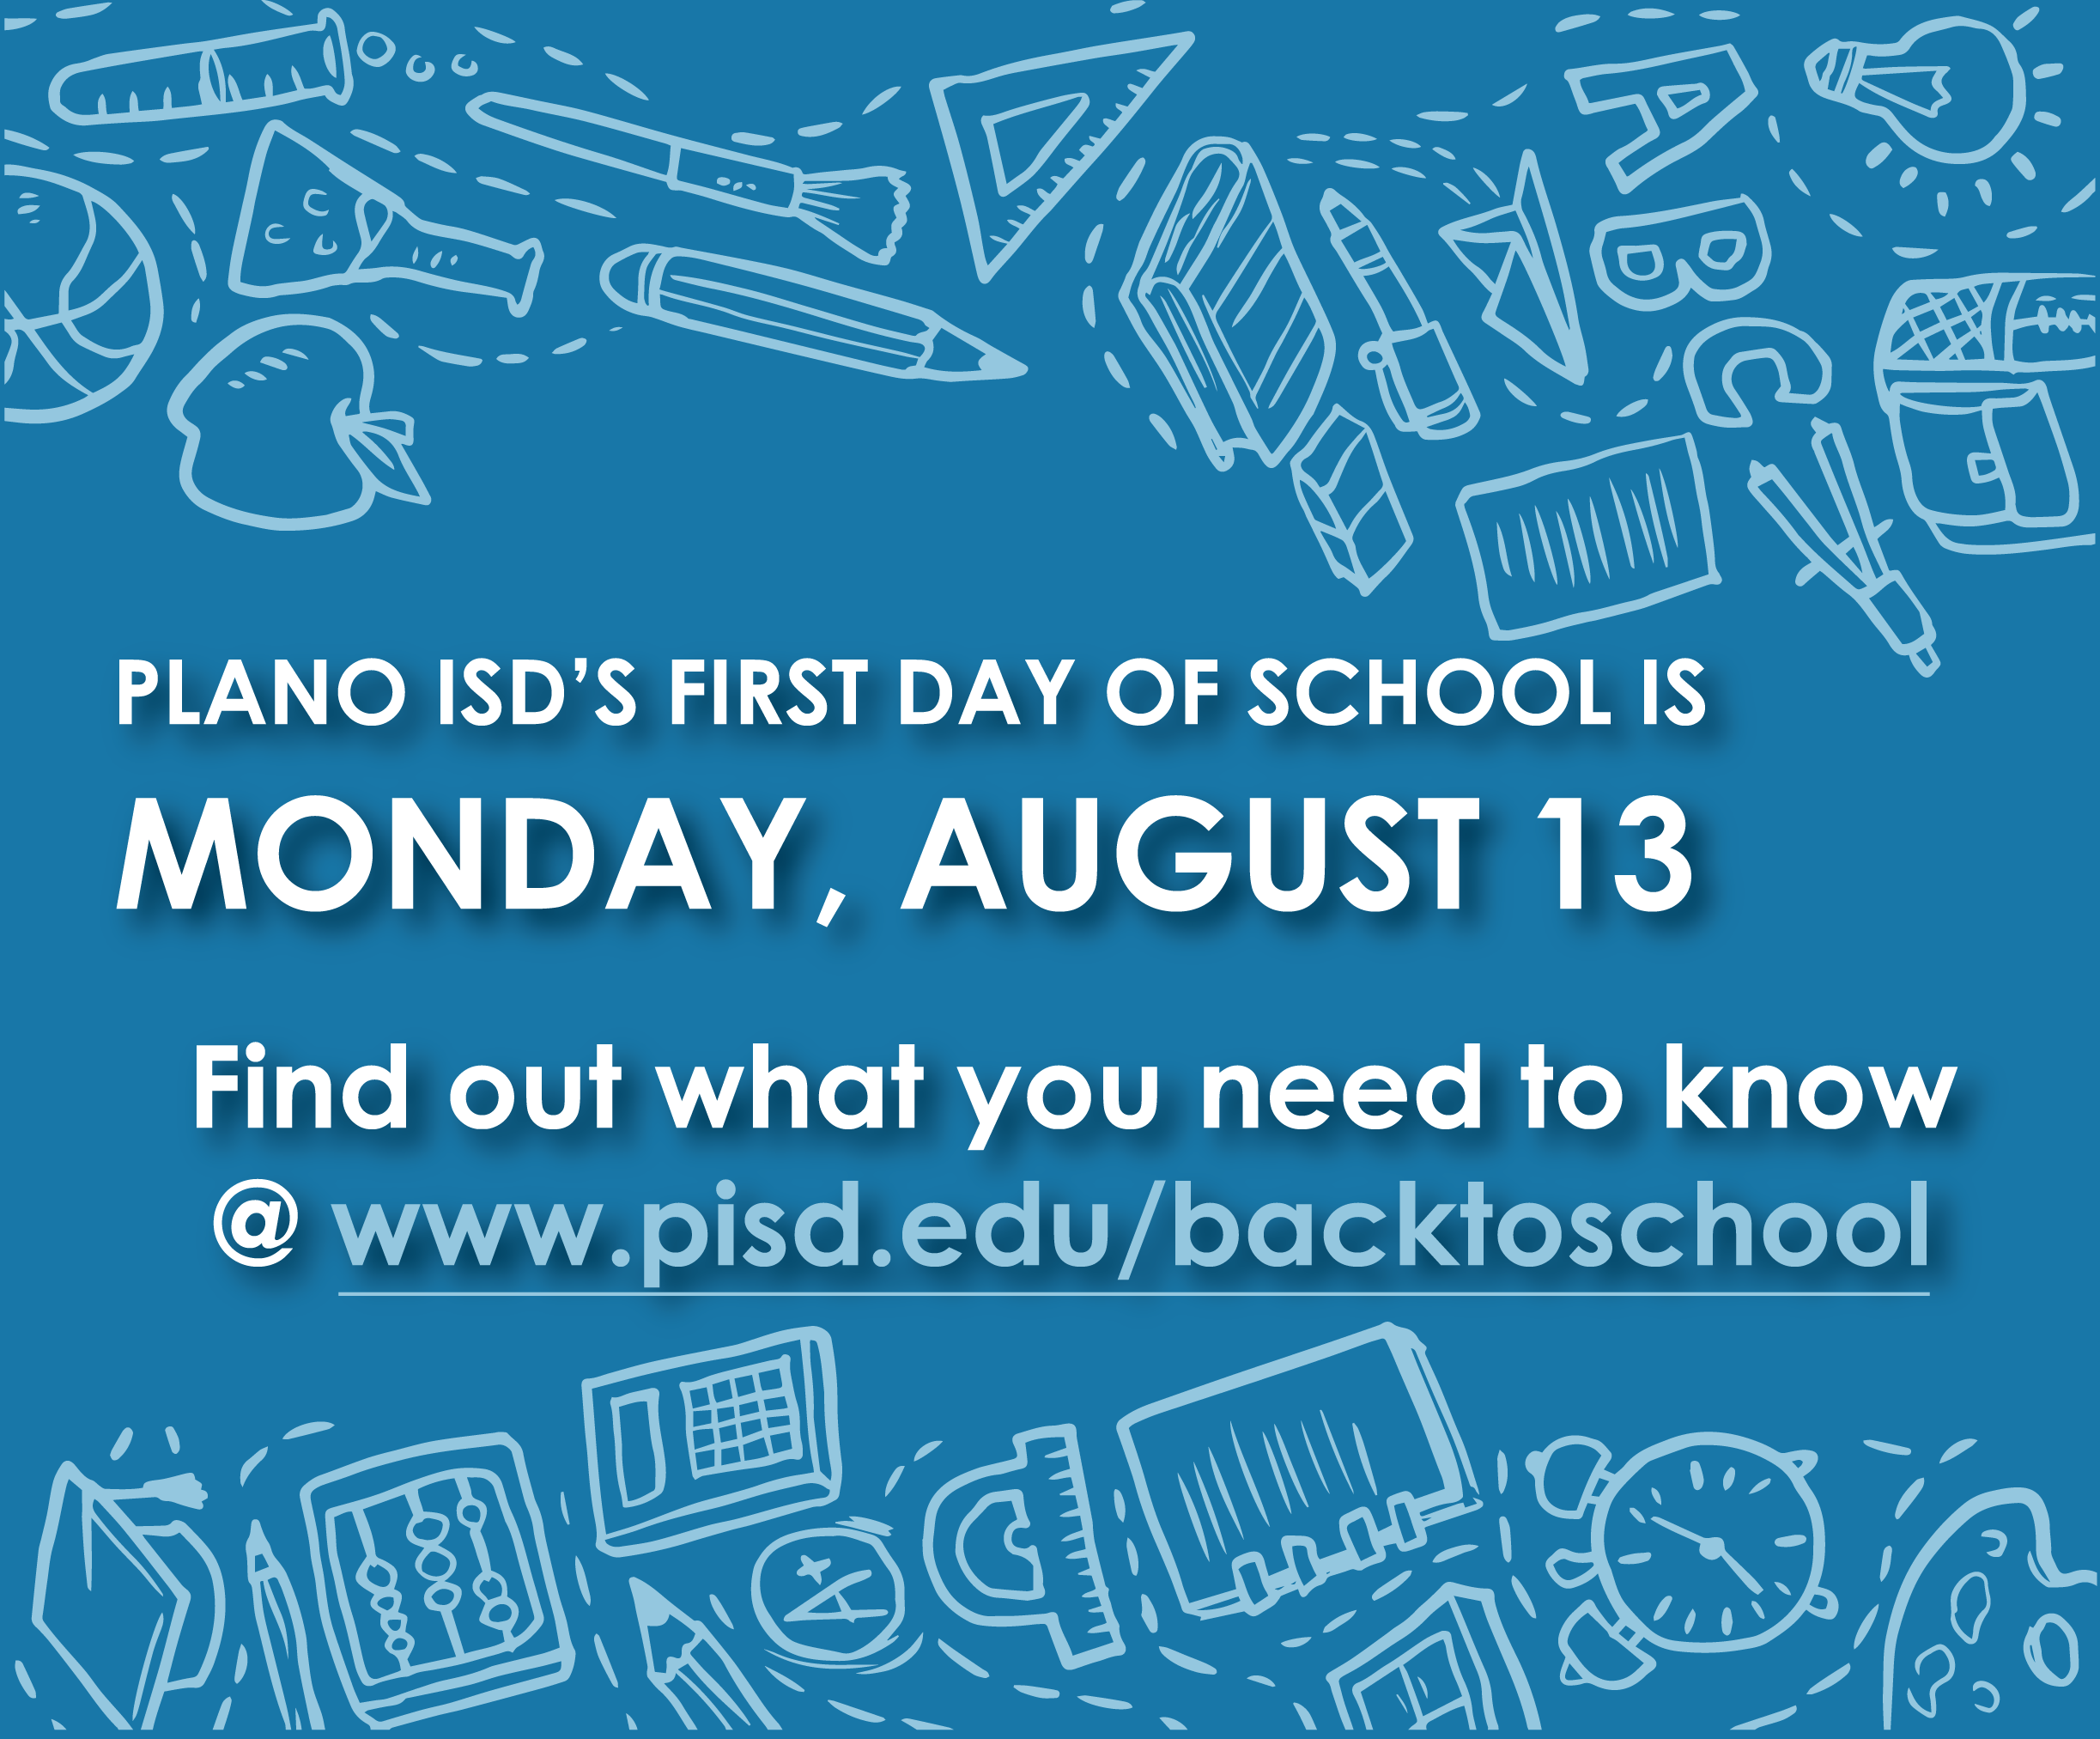 Plano ISD's first day of school is Monday, August 13.  Find ou what you need to know @ www.pisd.edu/backtoschool.